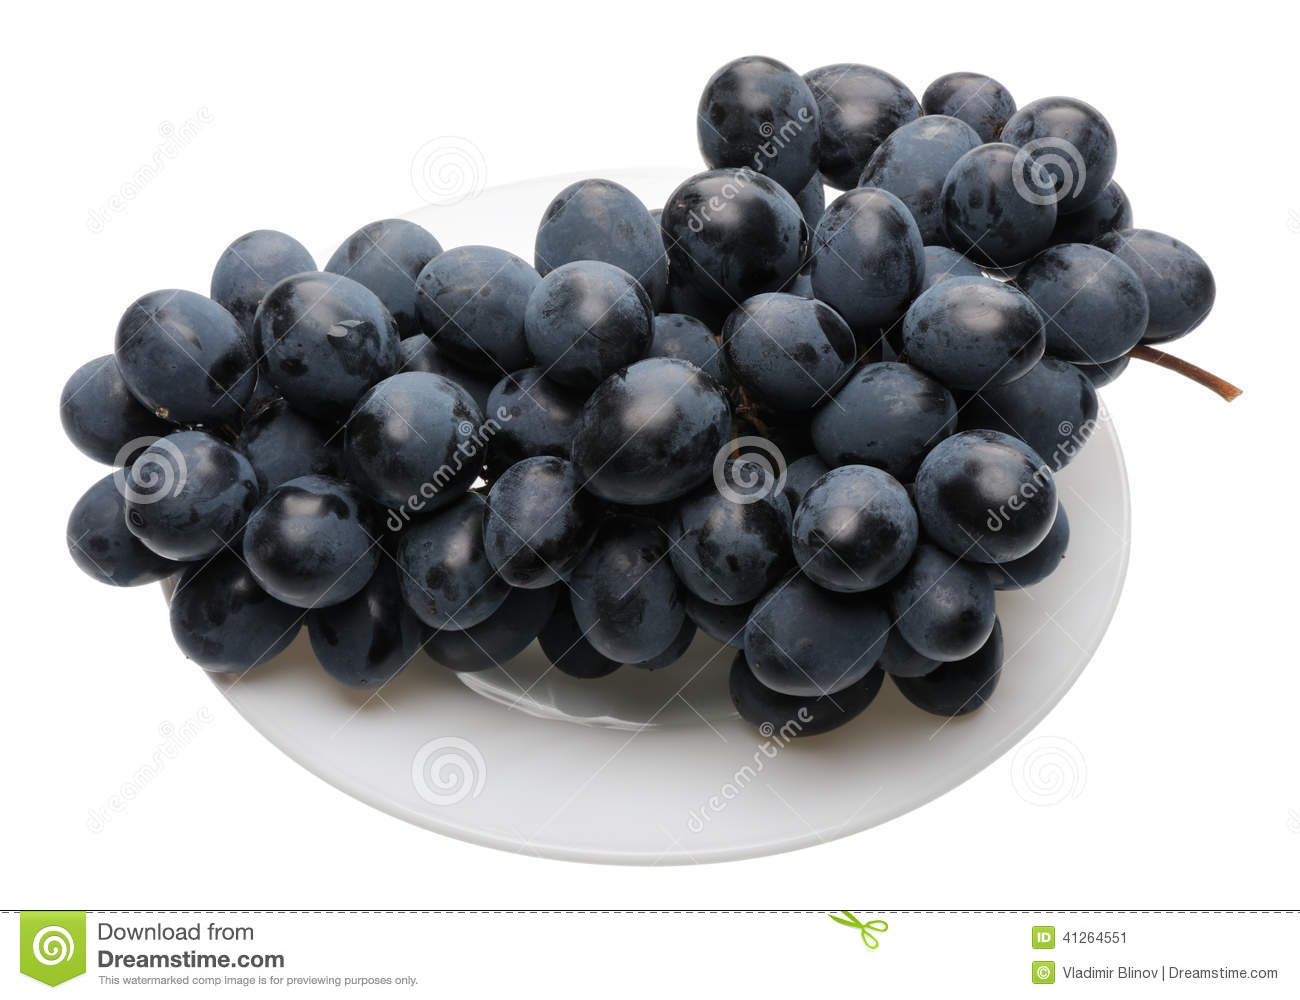 Black grapes on the plate